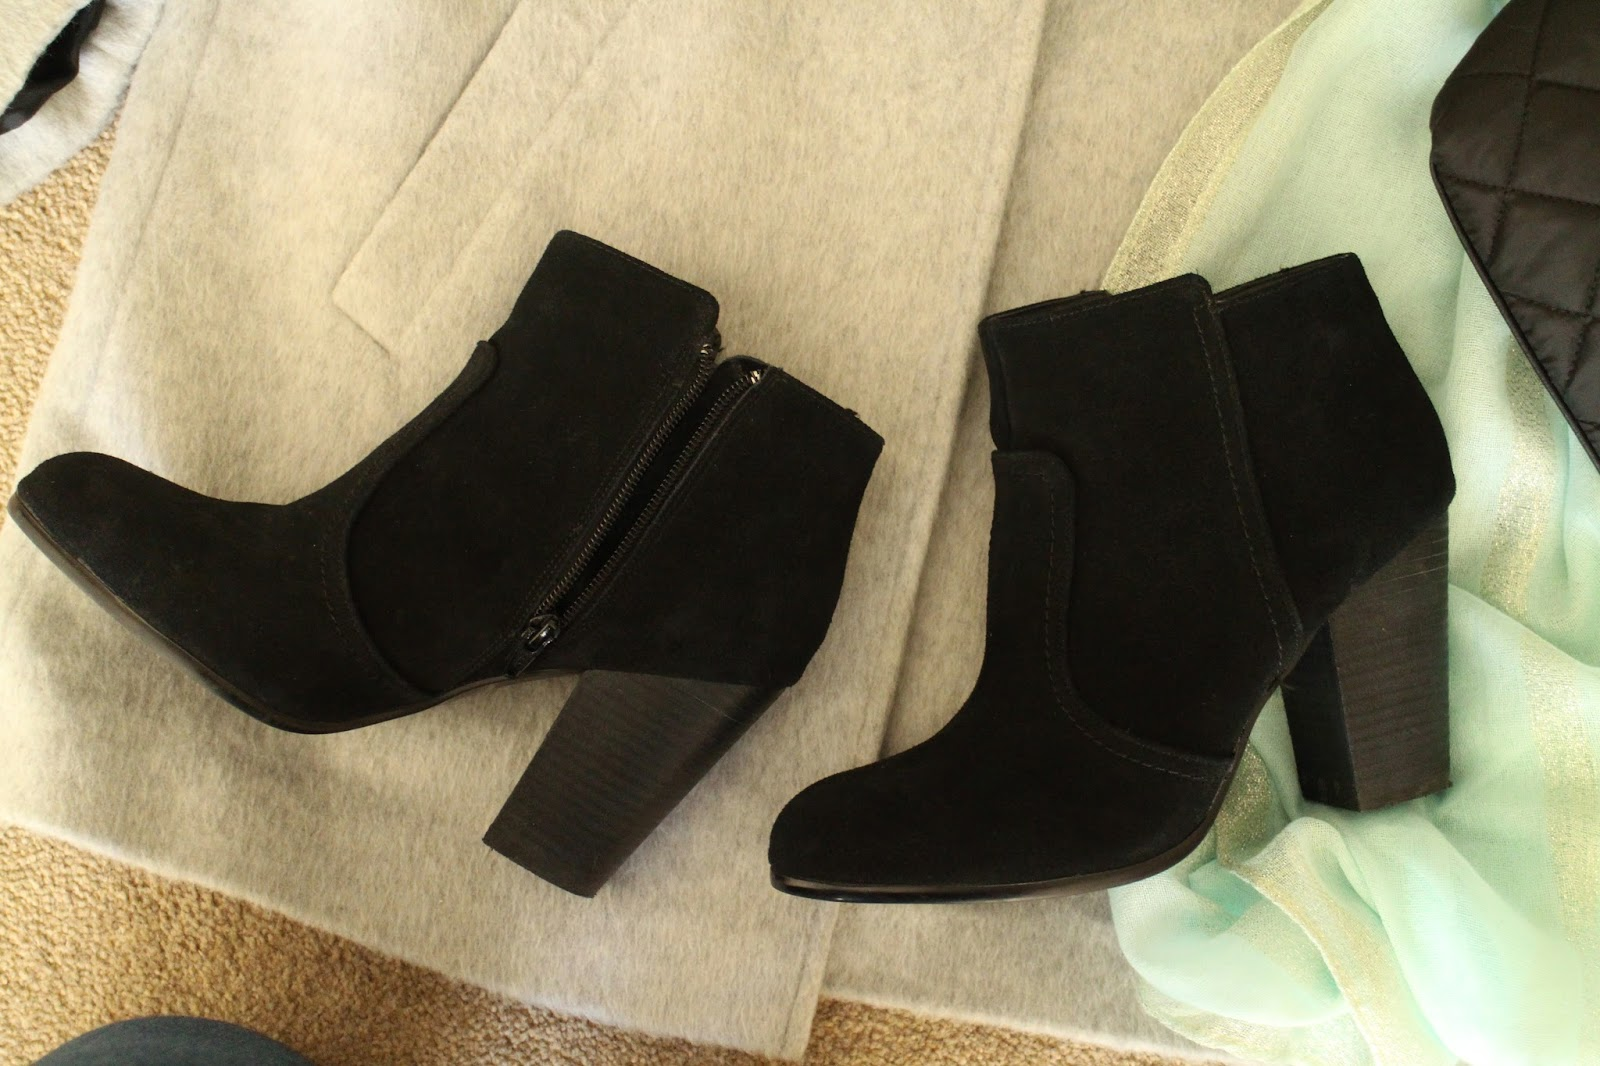 H&M SUEDE HEELED BOOTS